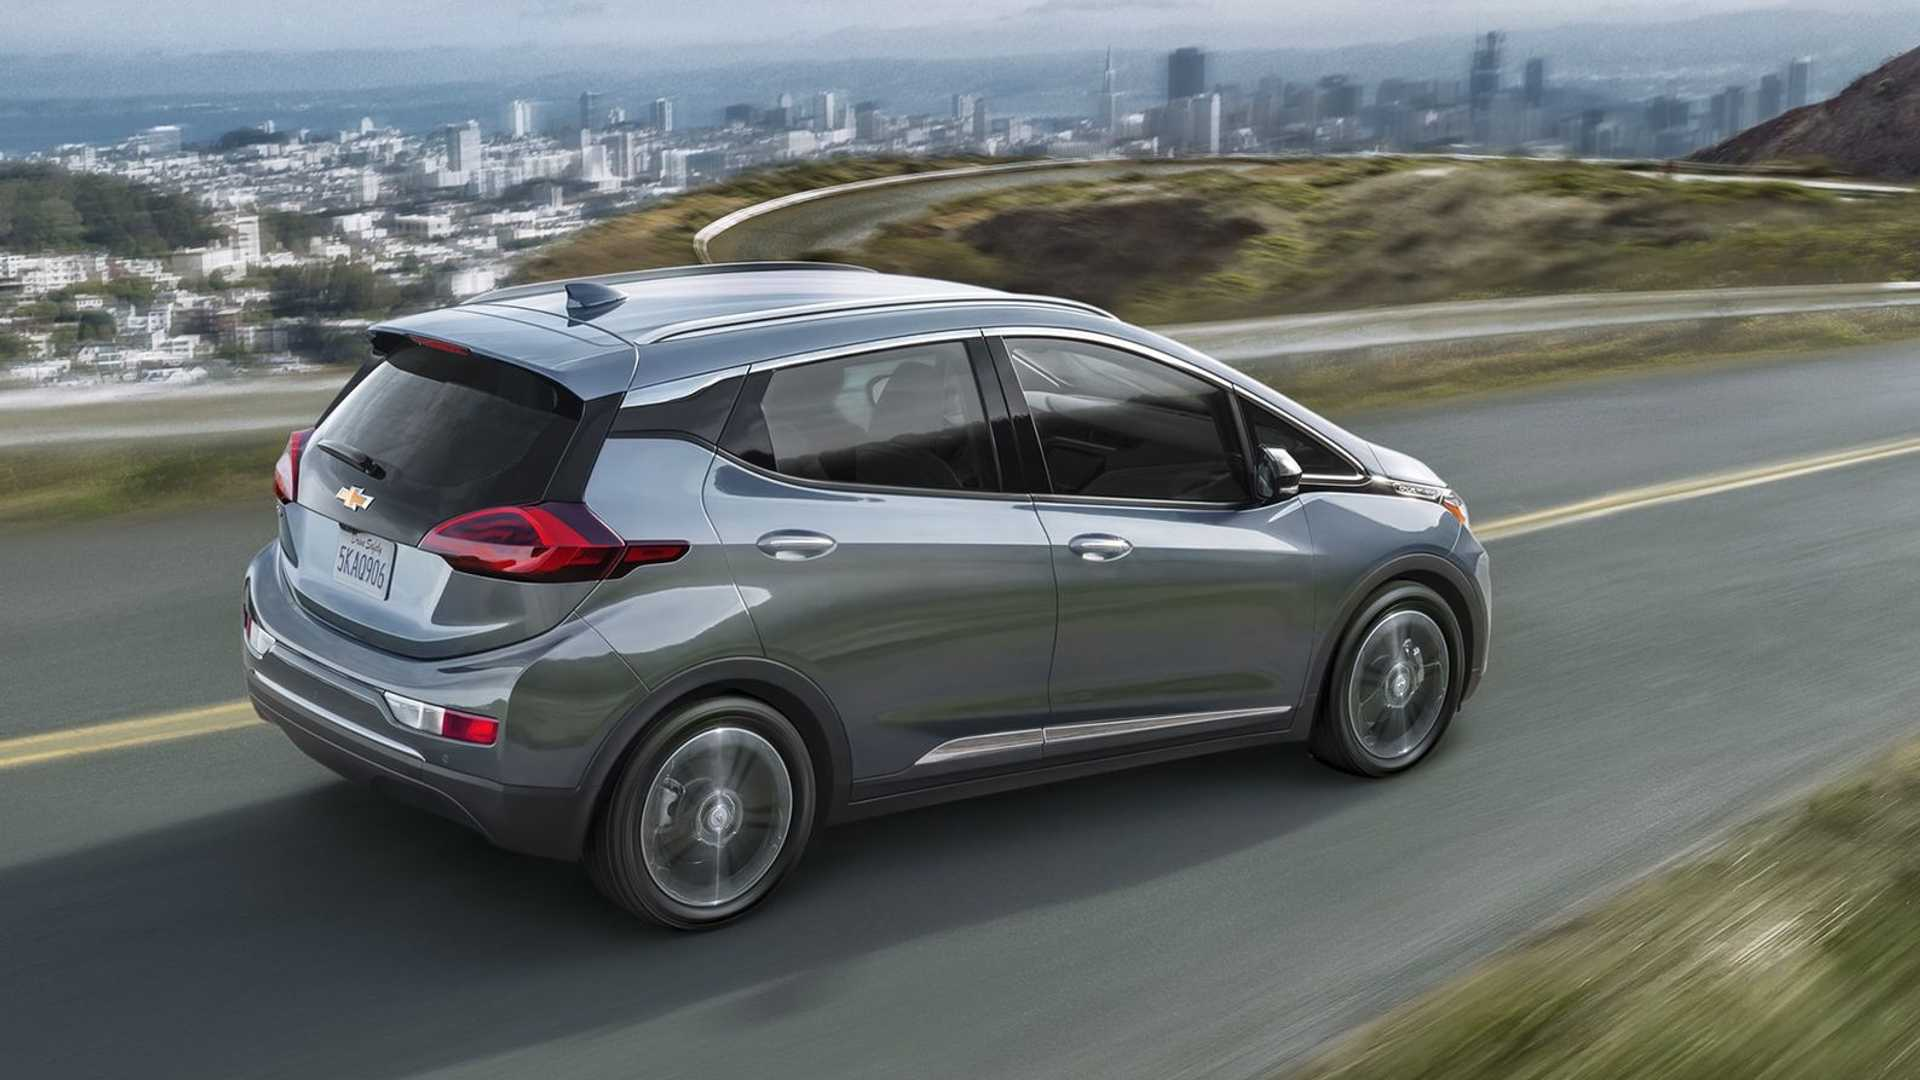 Lux Research Claims Most Electric Cars Remain Unprofitable